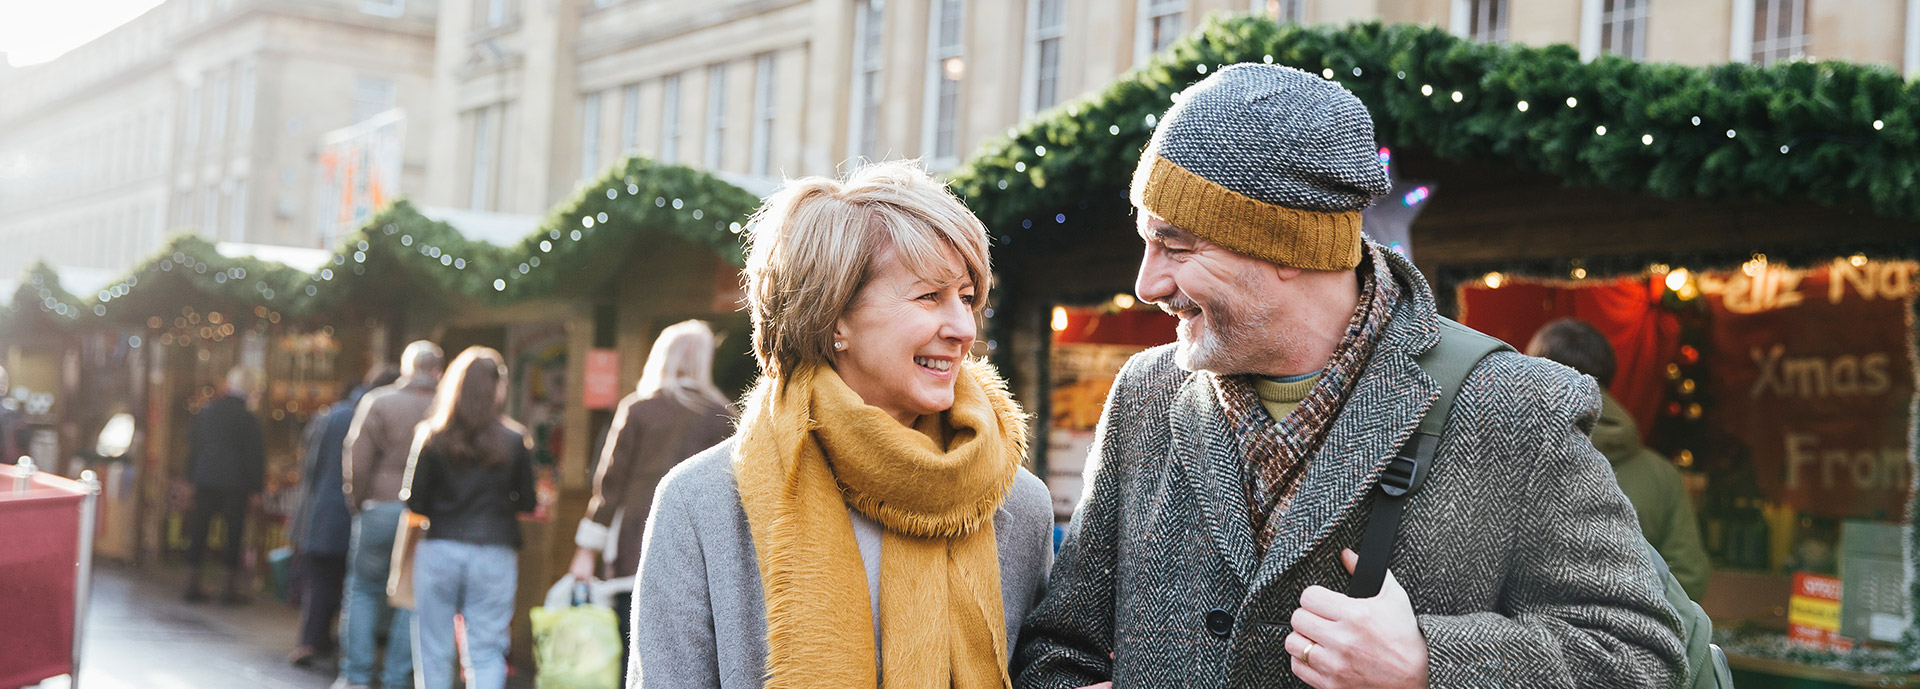 Image of a mature couple at market smiling